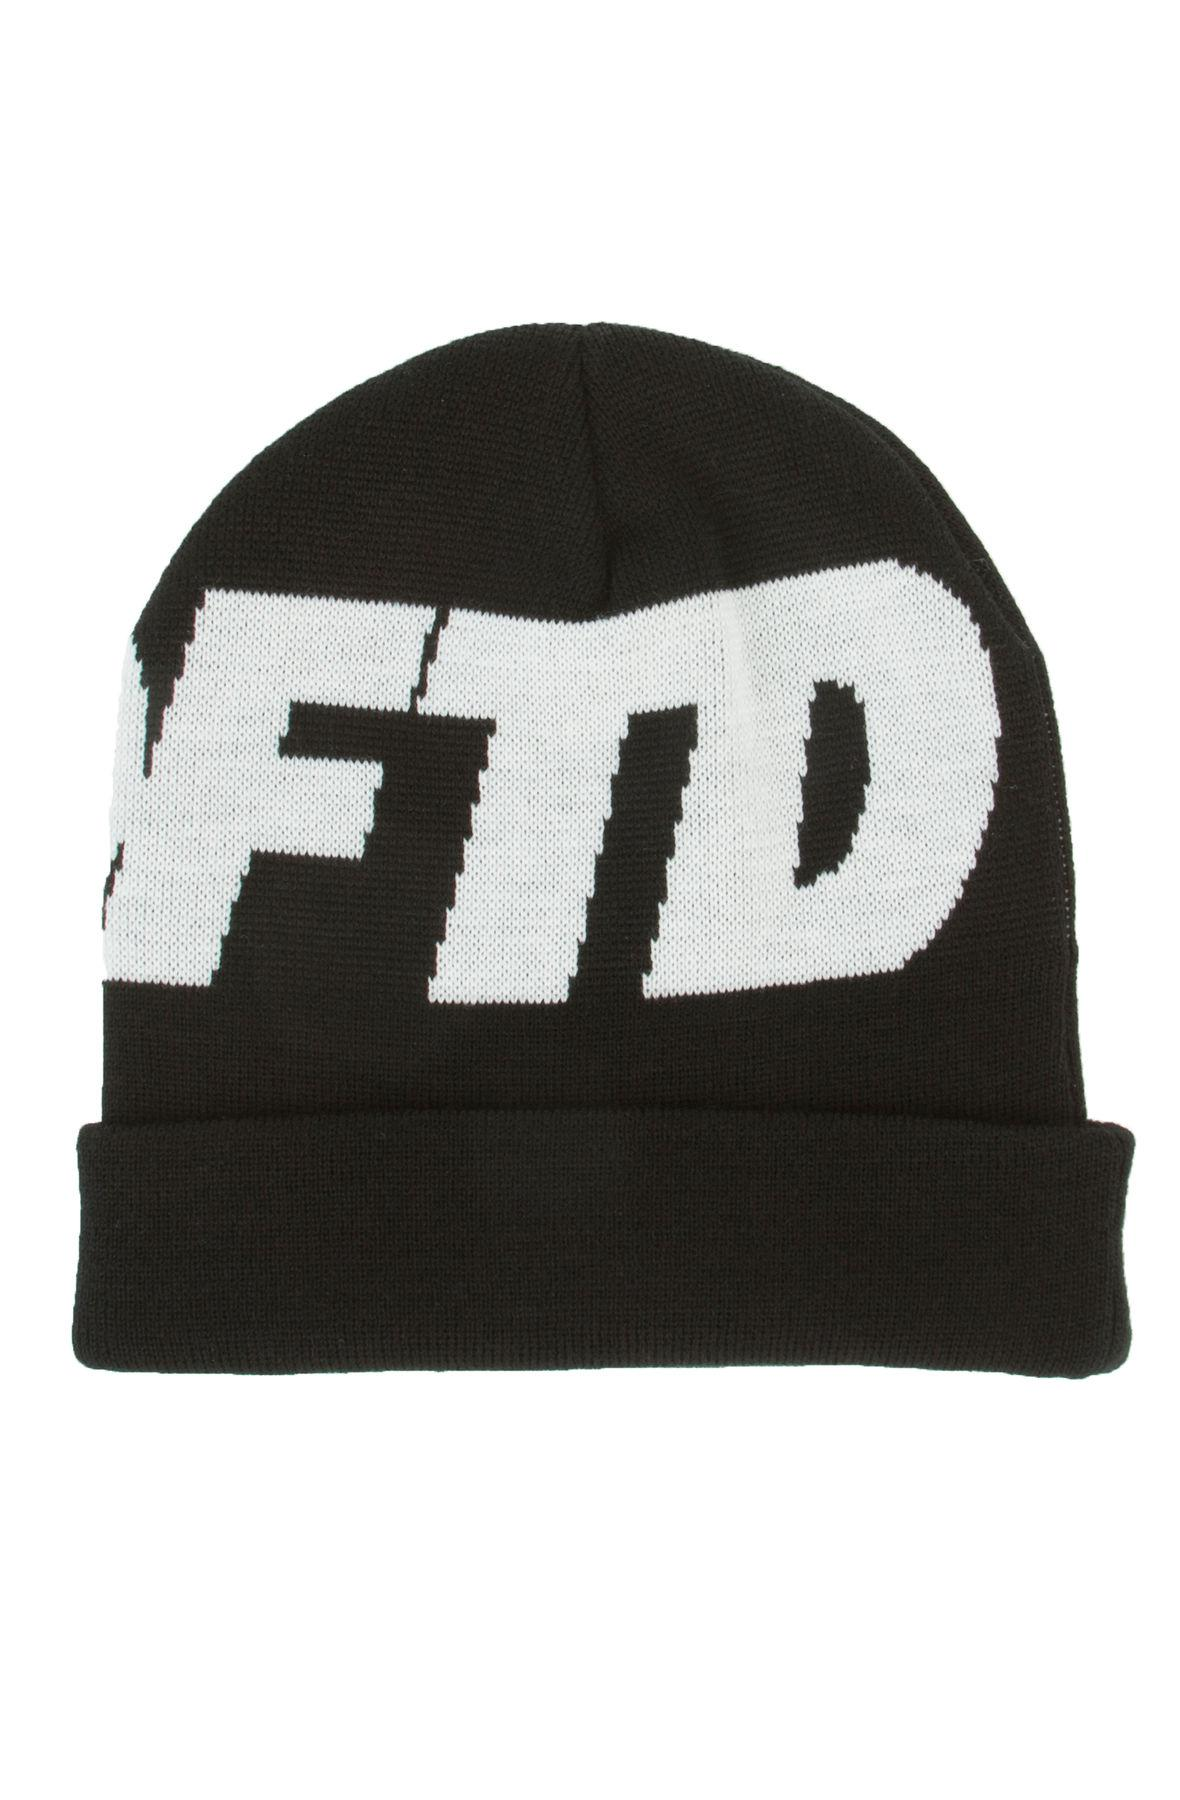 70b0844d47b Lyst - Undefeated The Undftd Logo Beanie in Black for Men